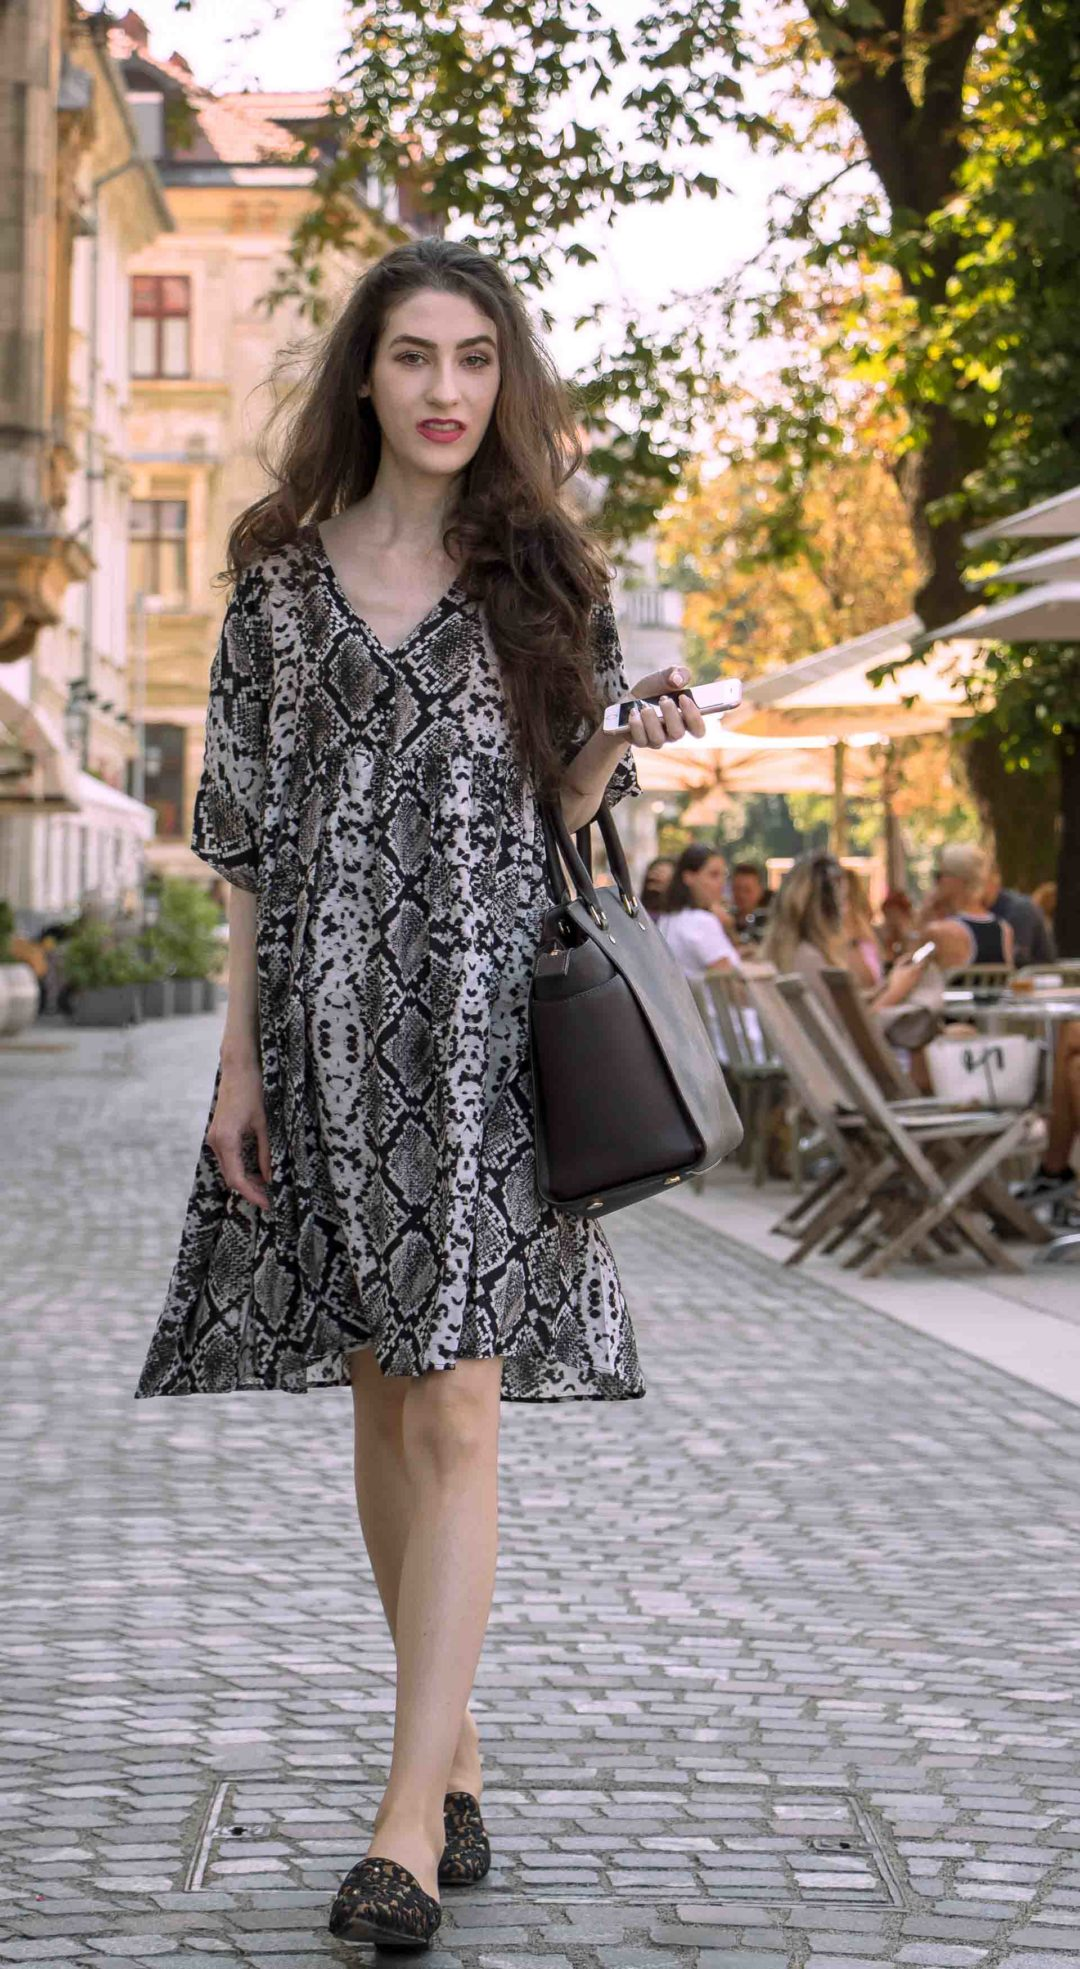 Beautiful Slovenian Fashion Blogger Veronika Lipar of Brunette from Wall dressed in flowing short snake print dress from Zara, black flat mules walking on the street in Ljubljana